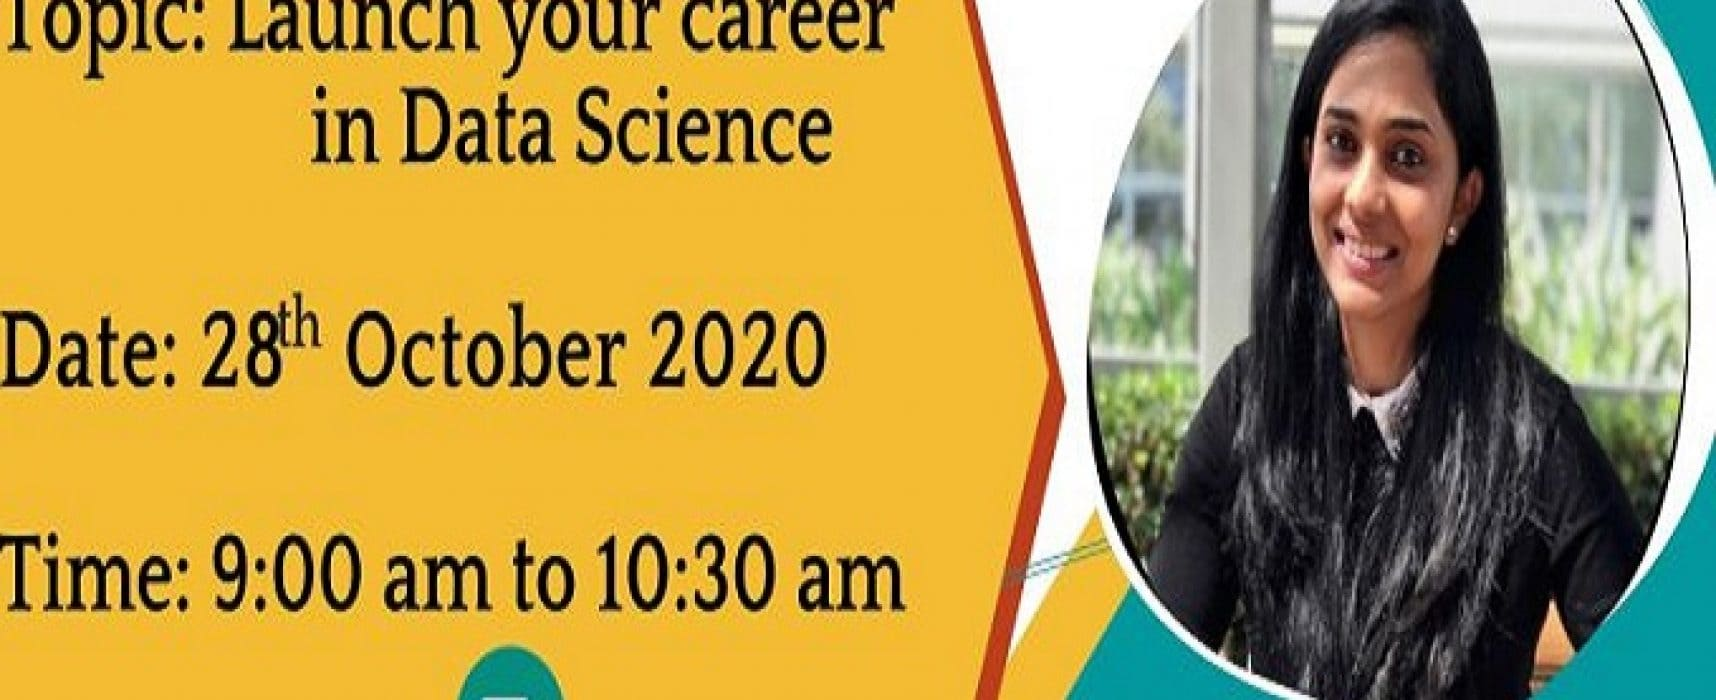 Launch your career in Data Science